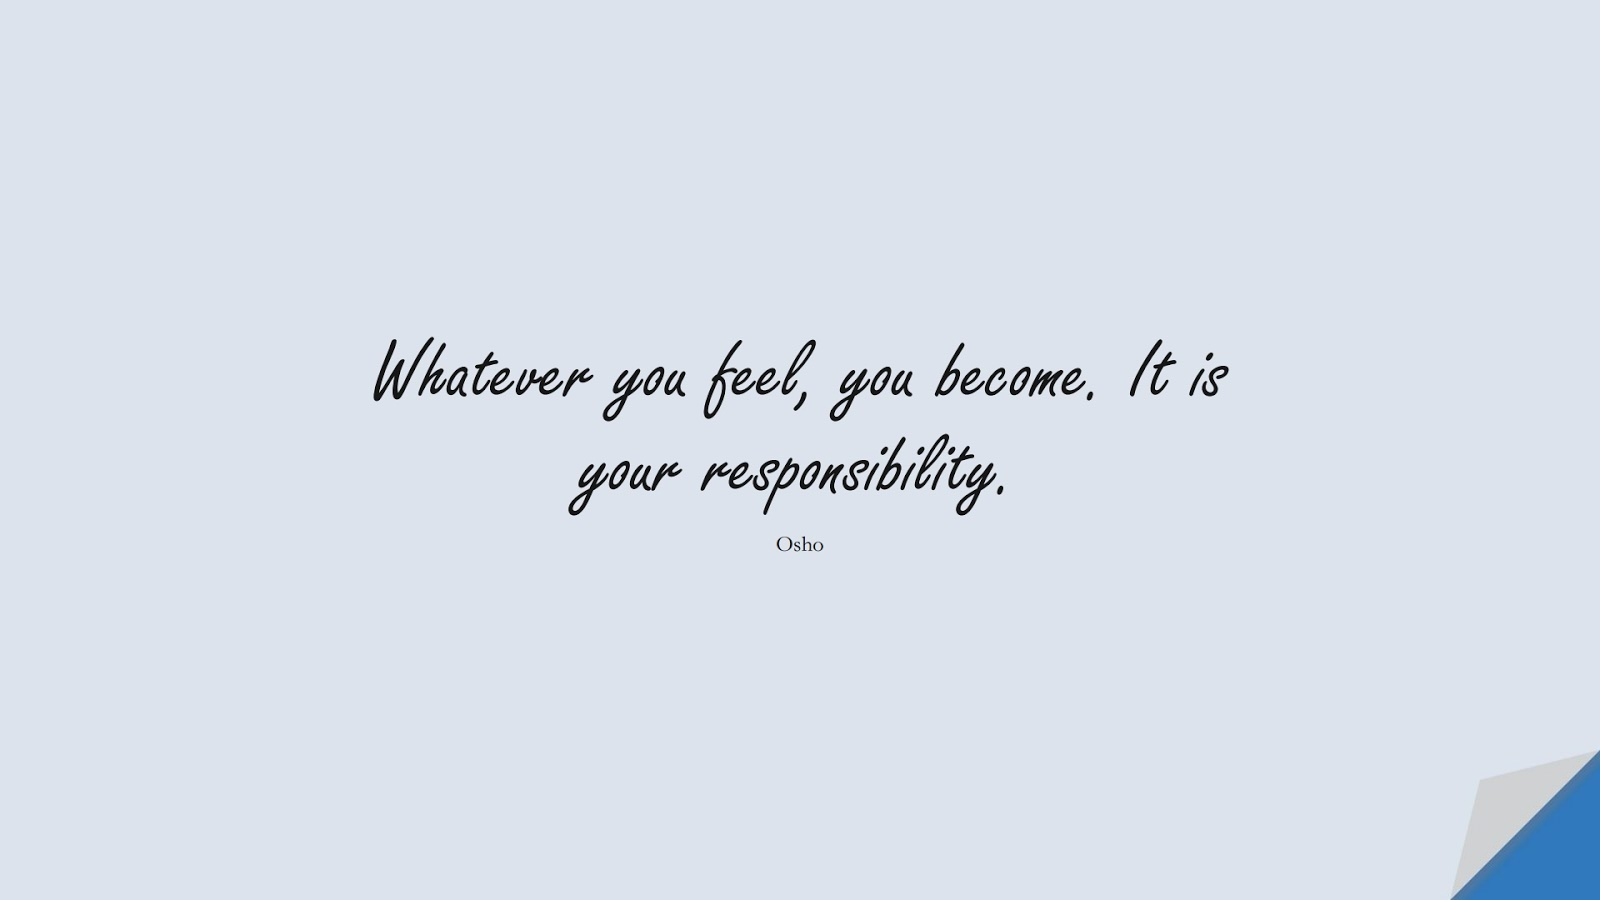 Whatever you feel, you become. It is your responsibility. (Osho);  #DepressionQuotes